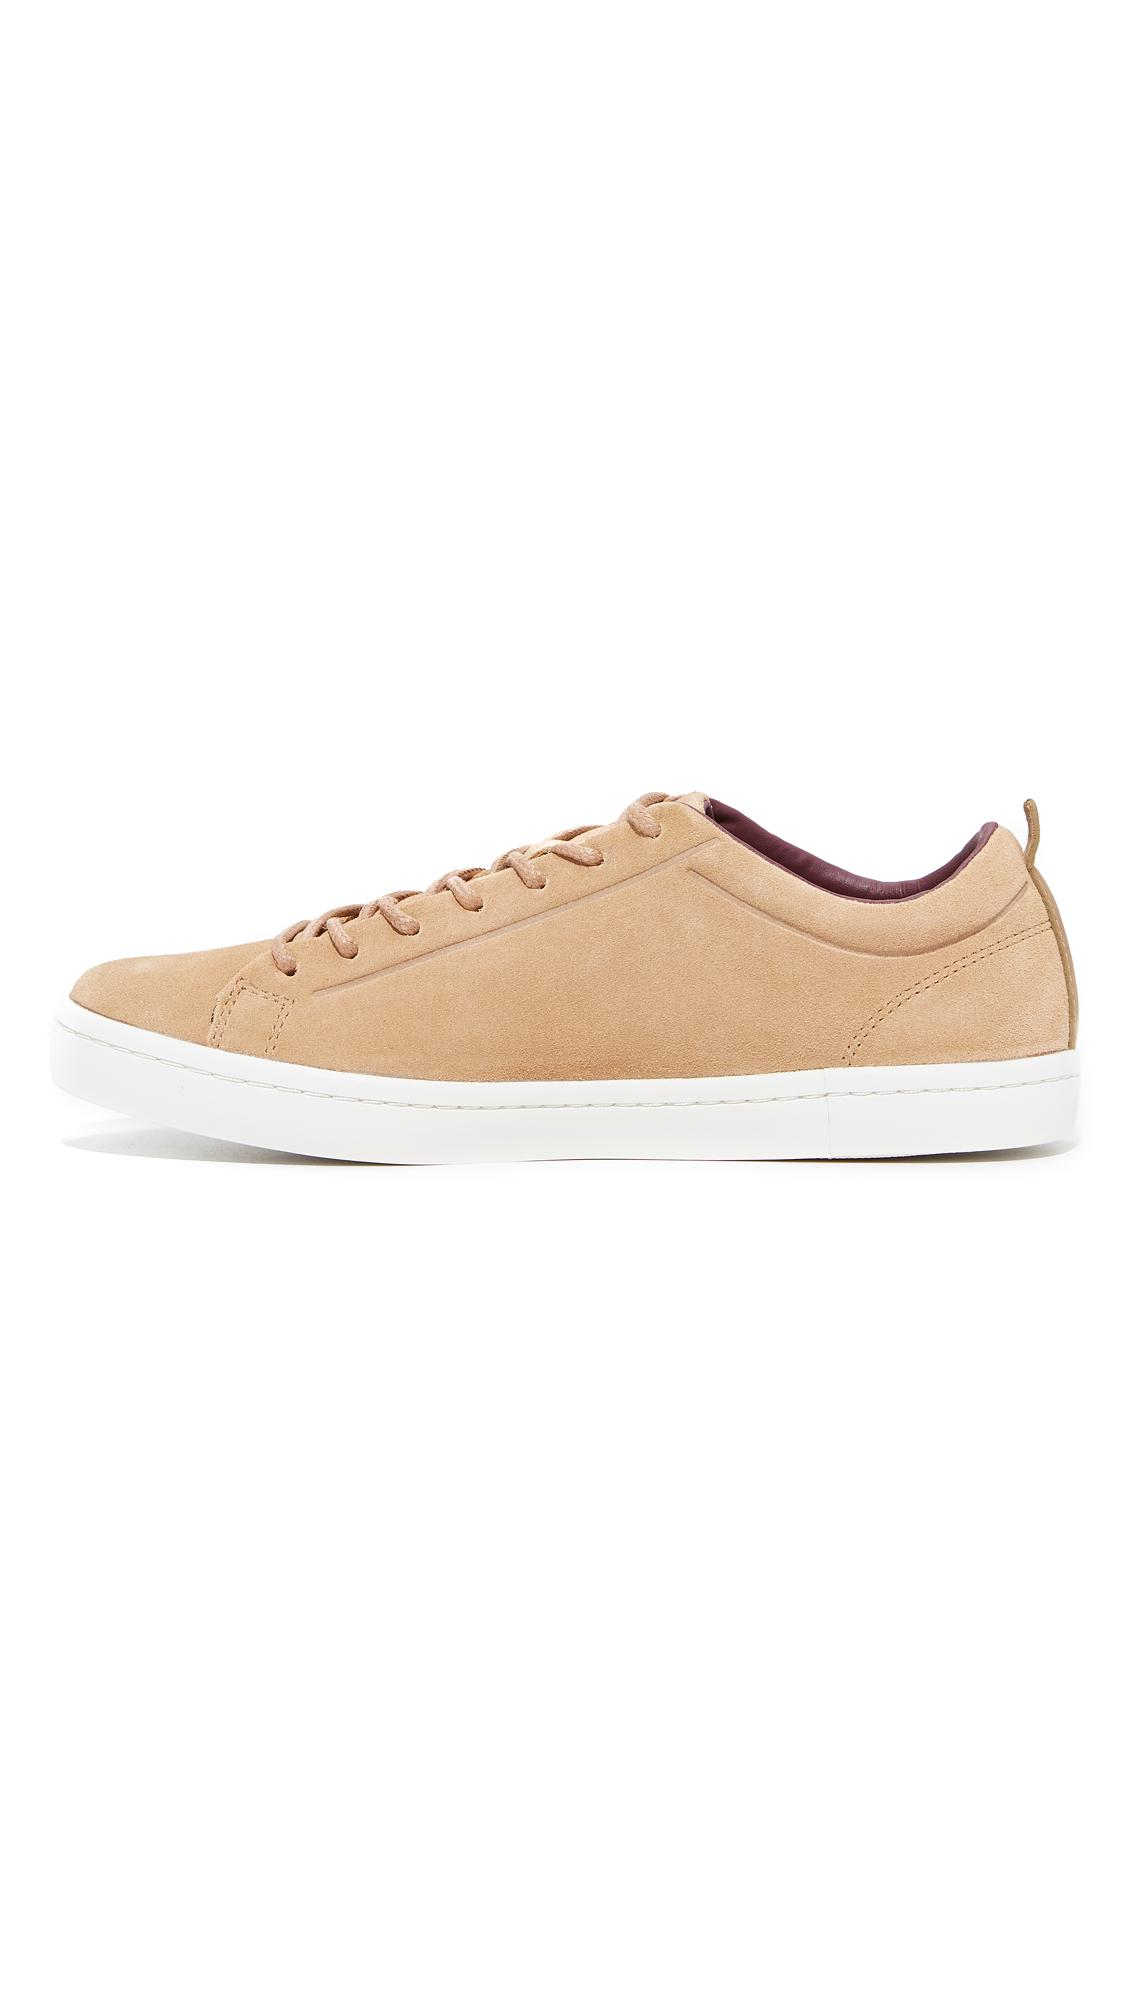 74c492d85 Lyst - Lacoste Straightset Suede Sneakers for Men